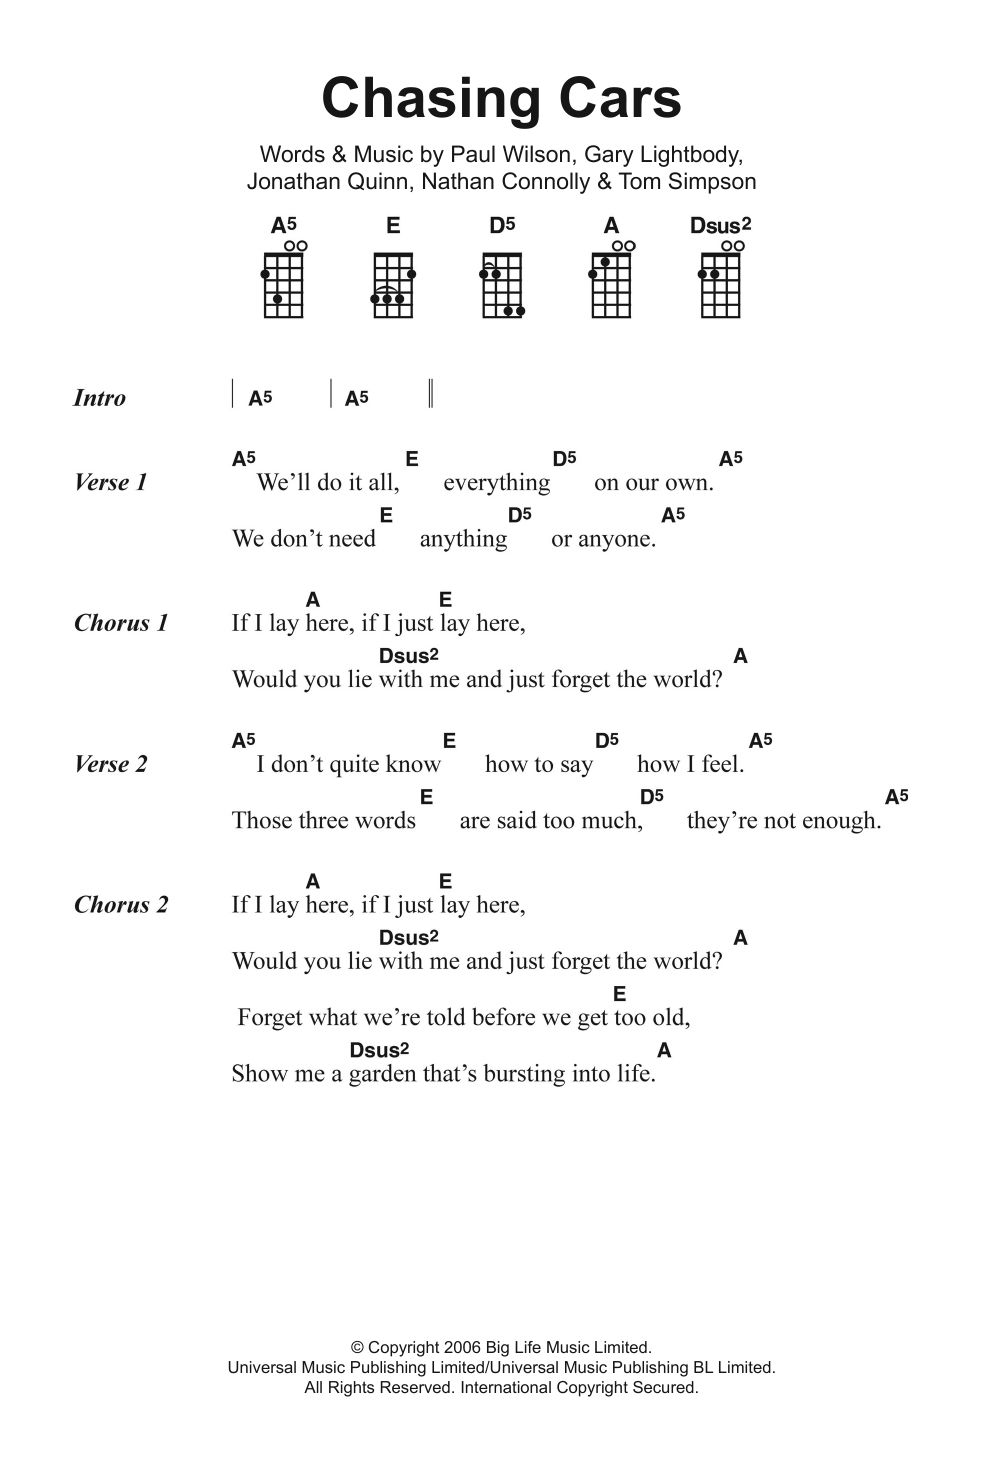 Chasing Cars Chords Ukulele Chords Songs Easy Ukulele Songs Ukulele Songs